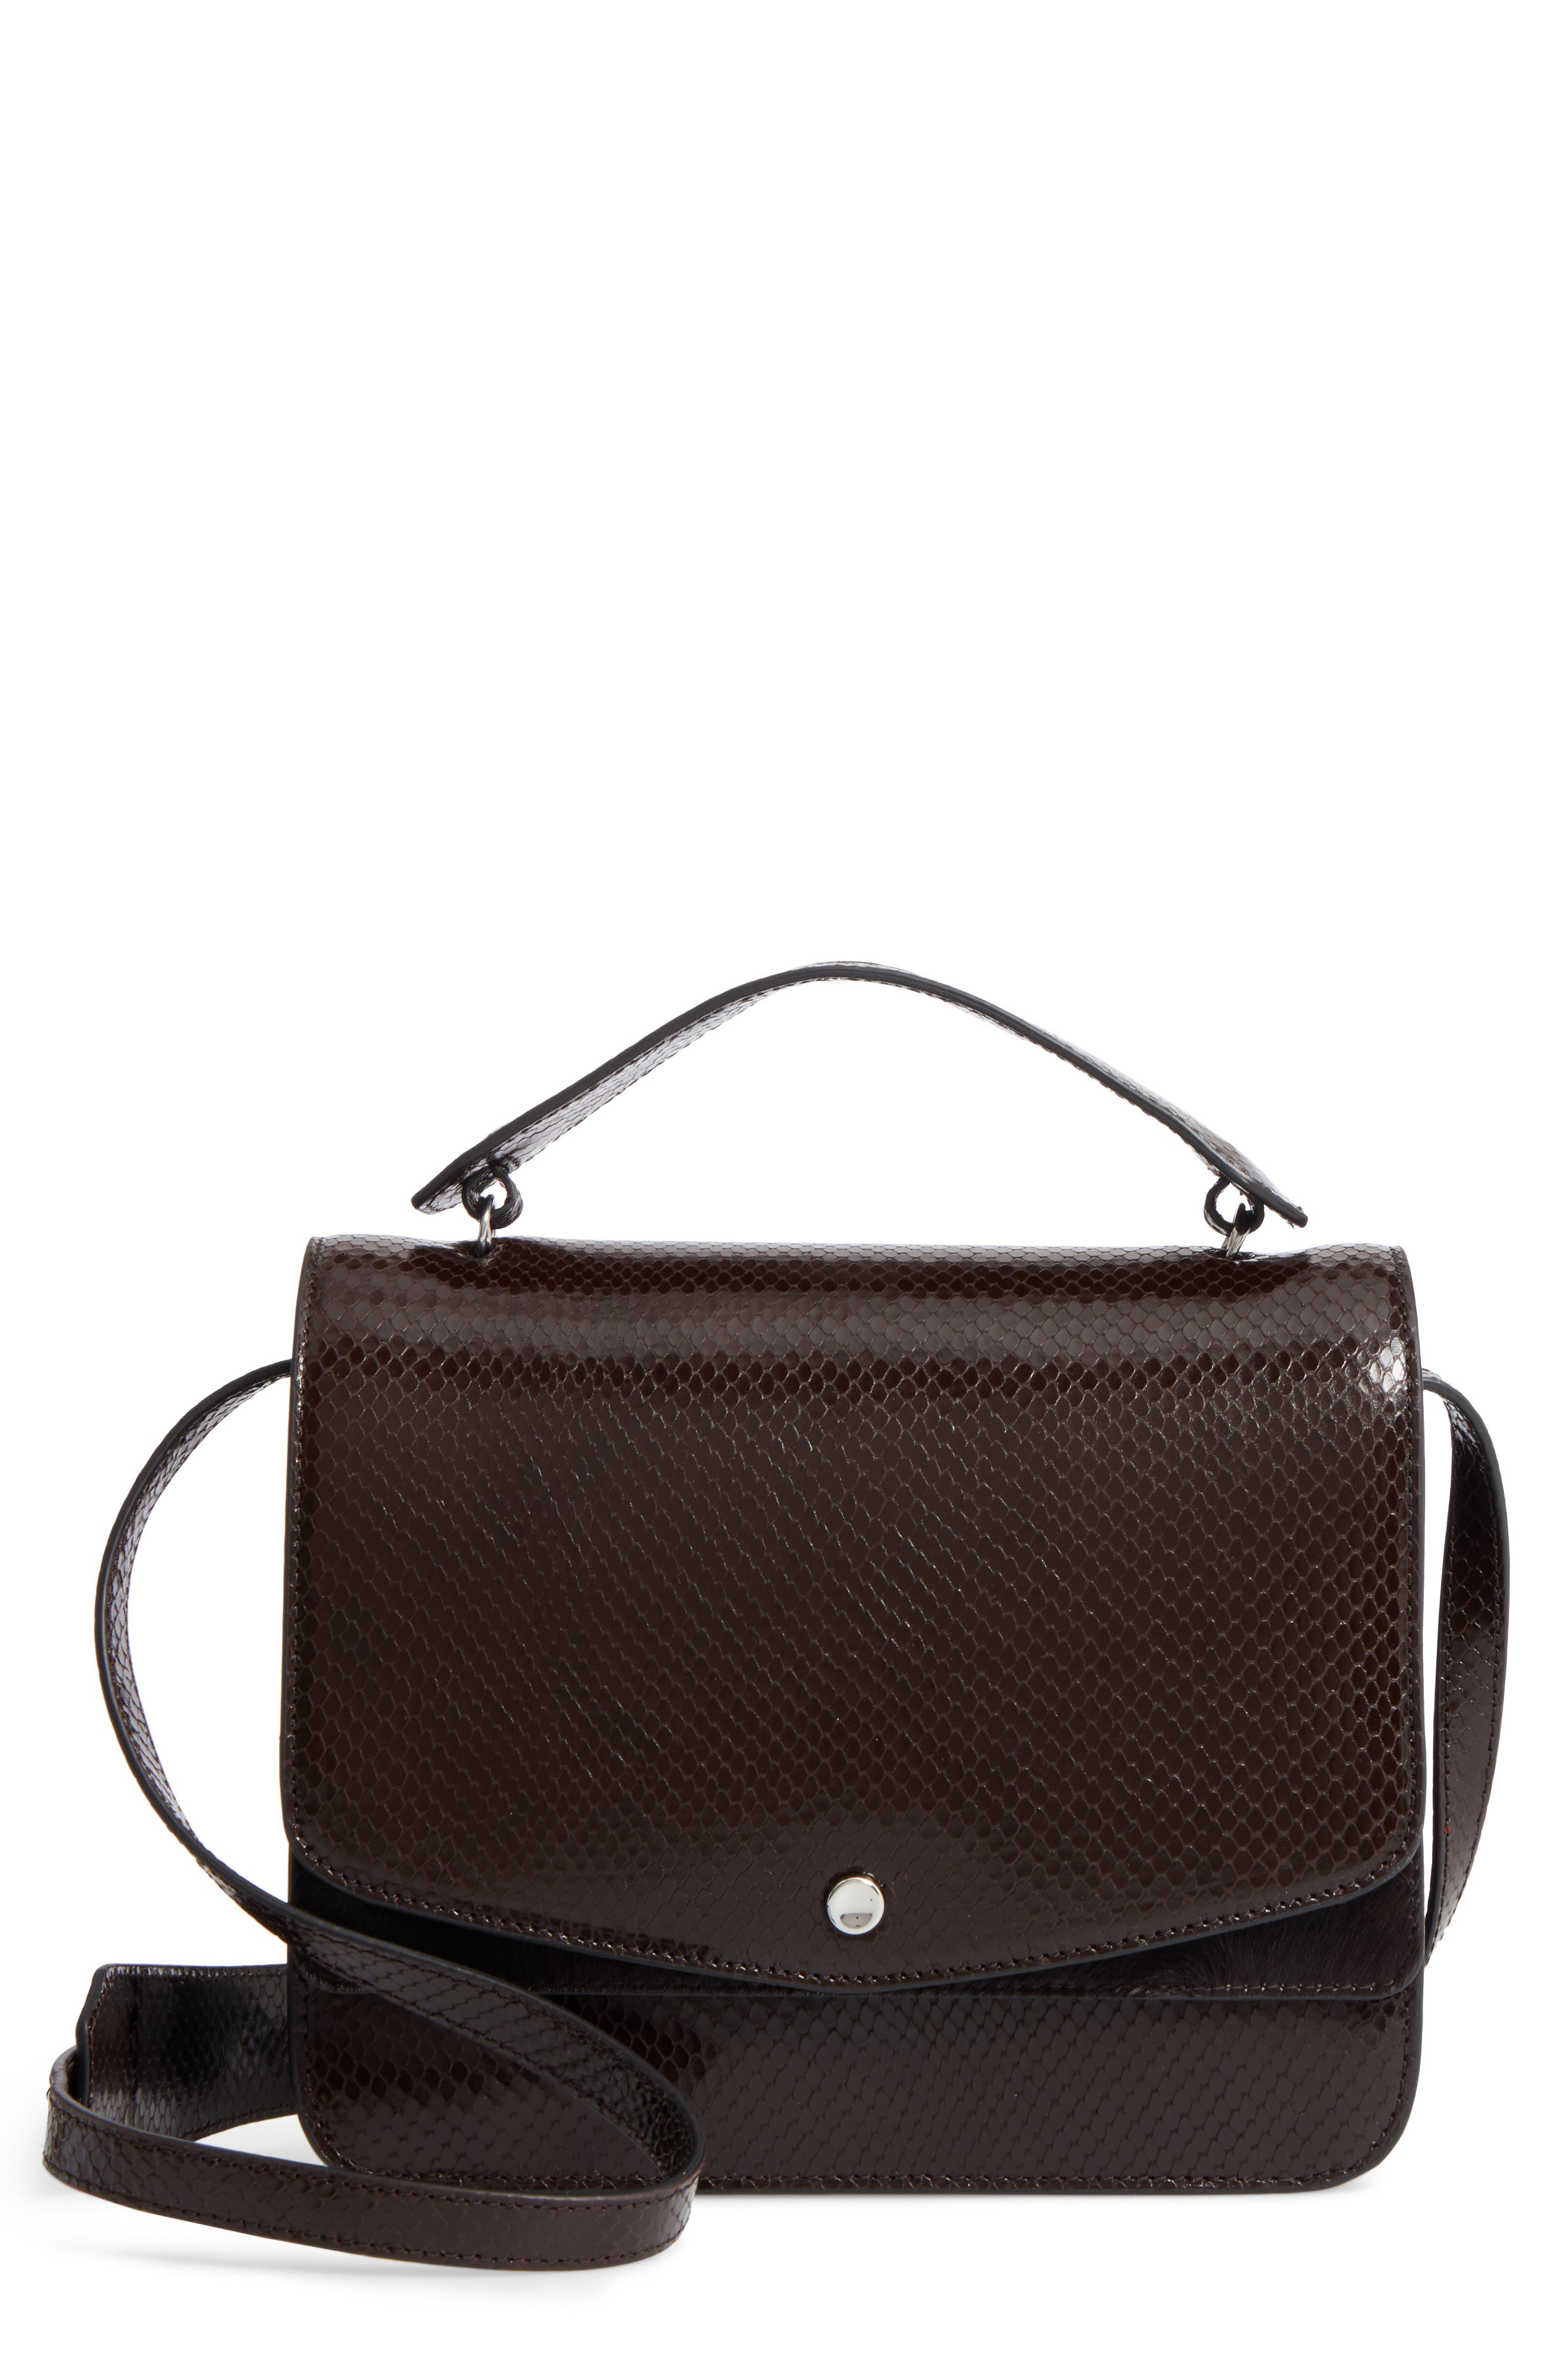 Eloise Genuine Calf Hair & Leather Shoulder Bag,                         Main,                         color, Chocolate